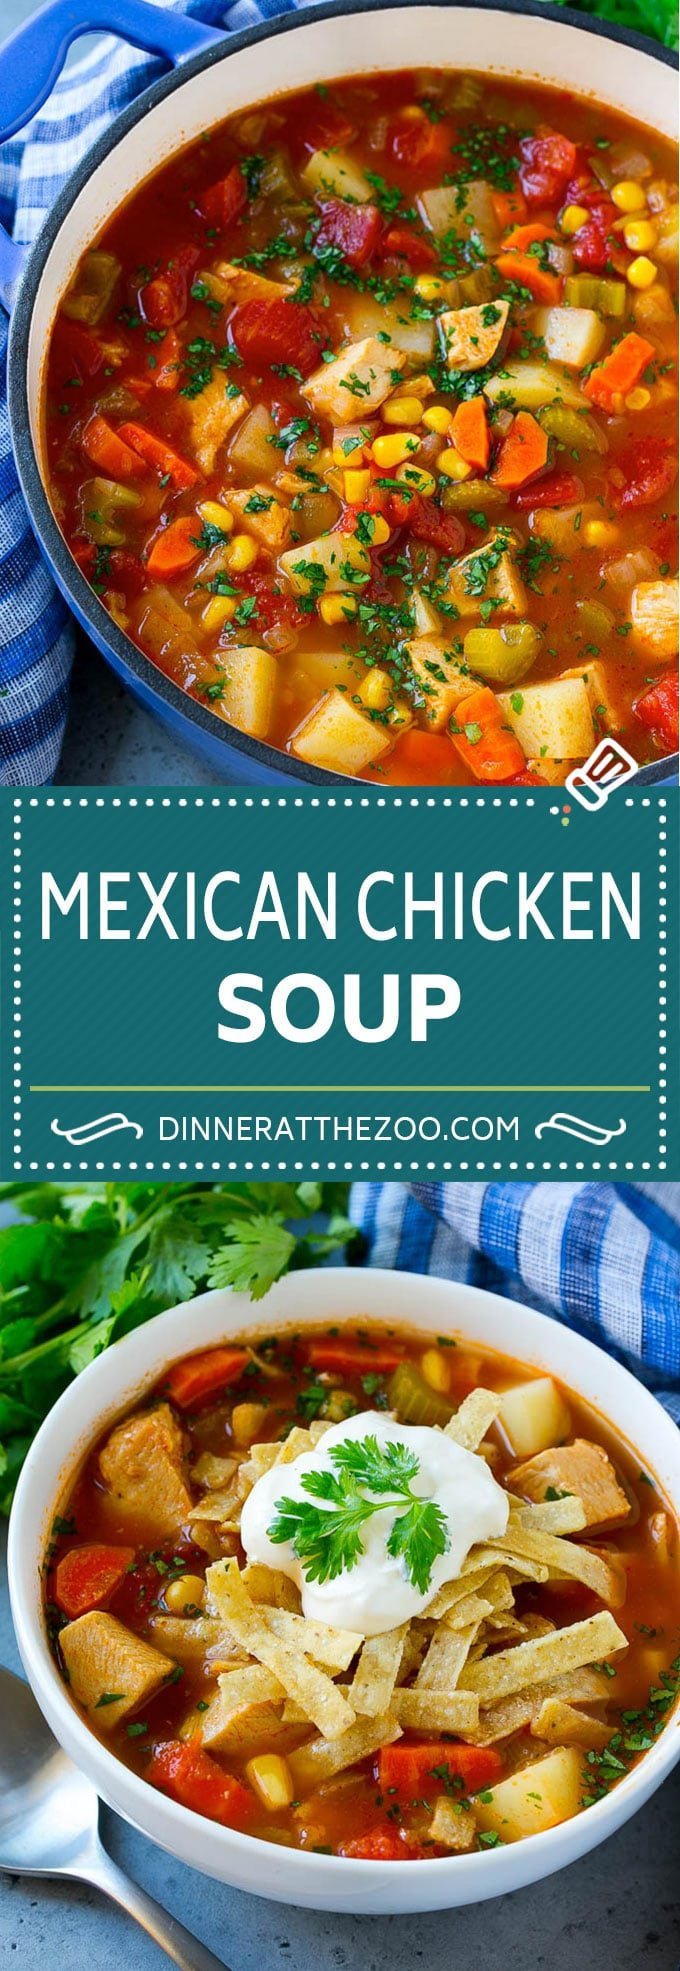 Mexican Chicken Soup | Chicken and Vegetable Soup | Chicken and Potato Soup #chicken #soup #chickensoup #mexican #healthy #dinner #dinneratthezoo